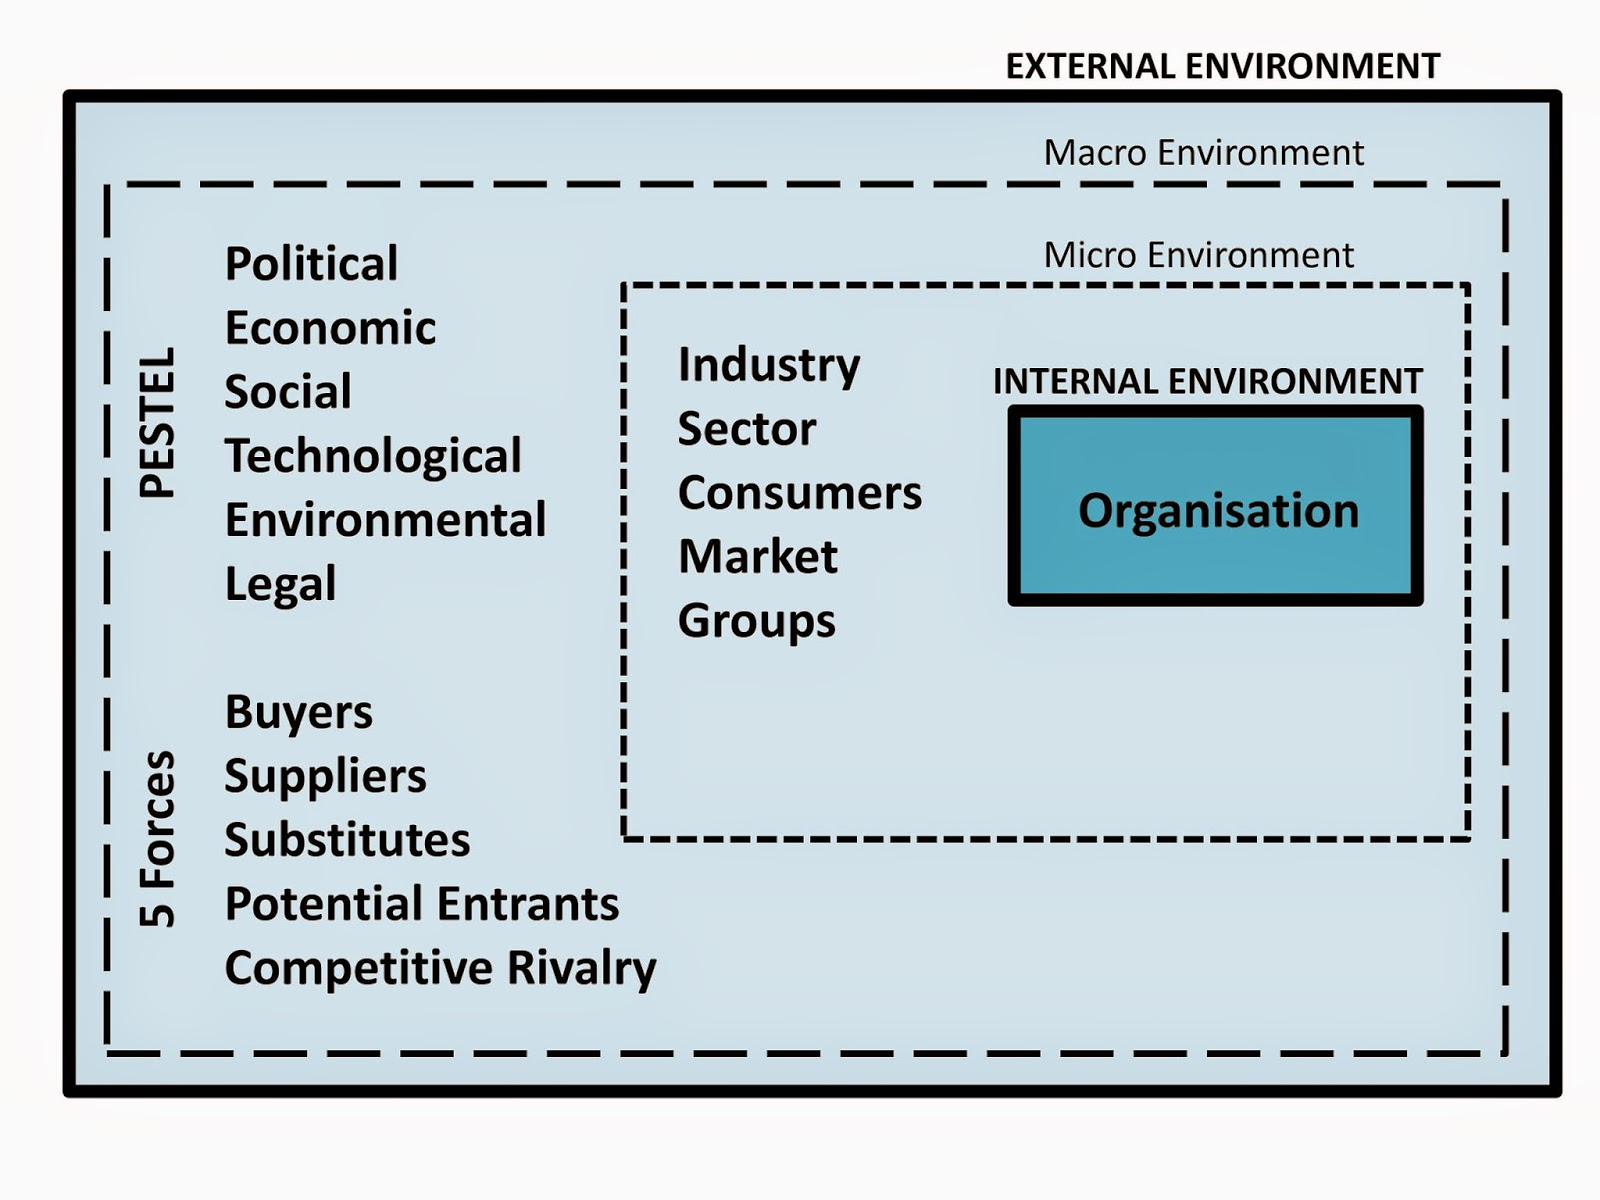 Analysis of the external environment of the organization: methods 78